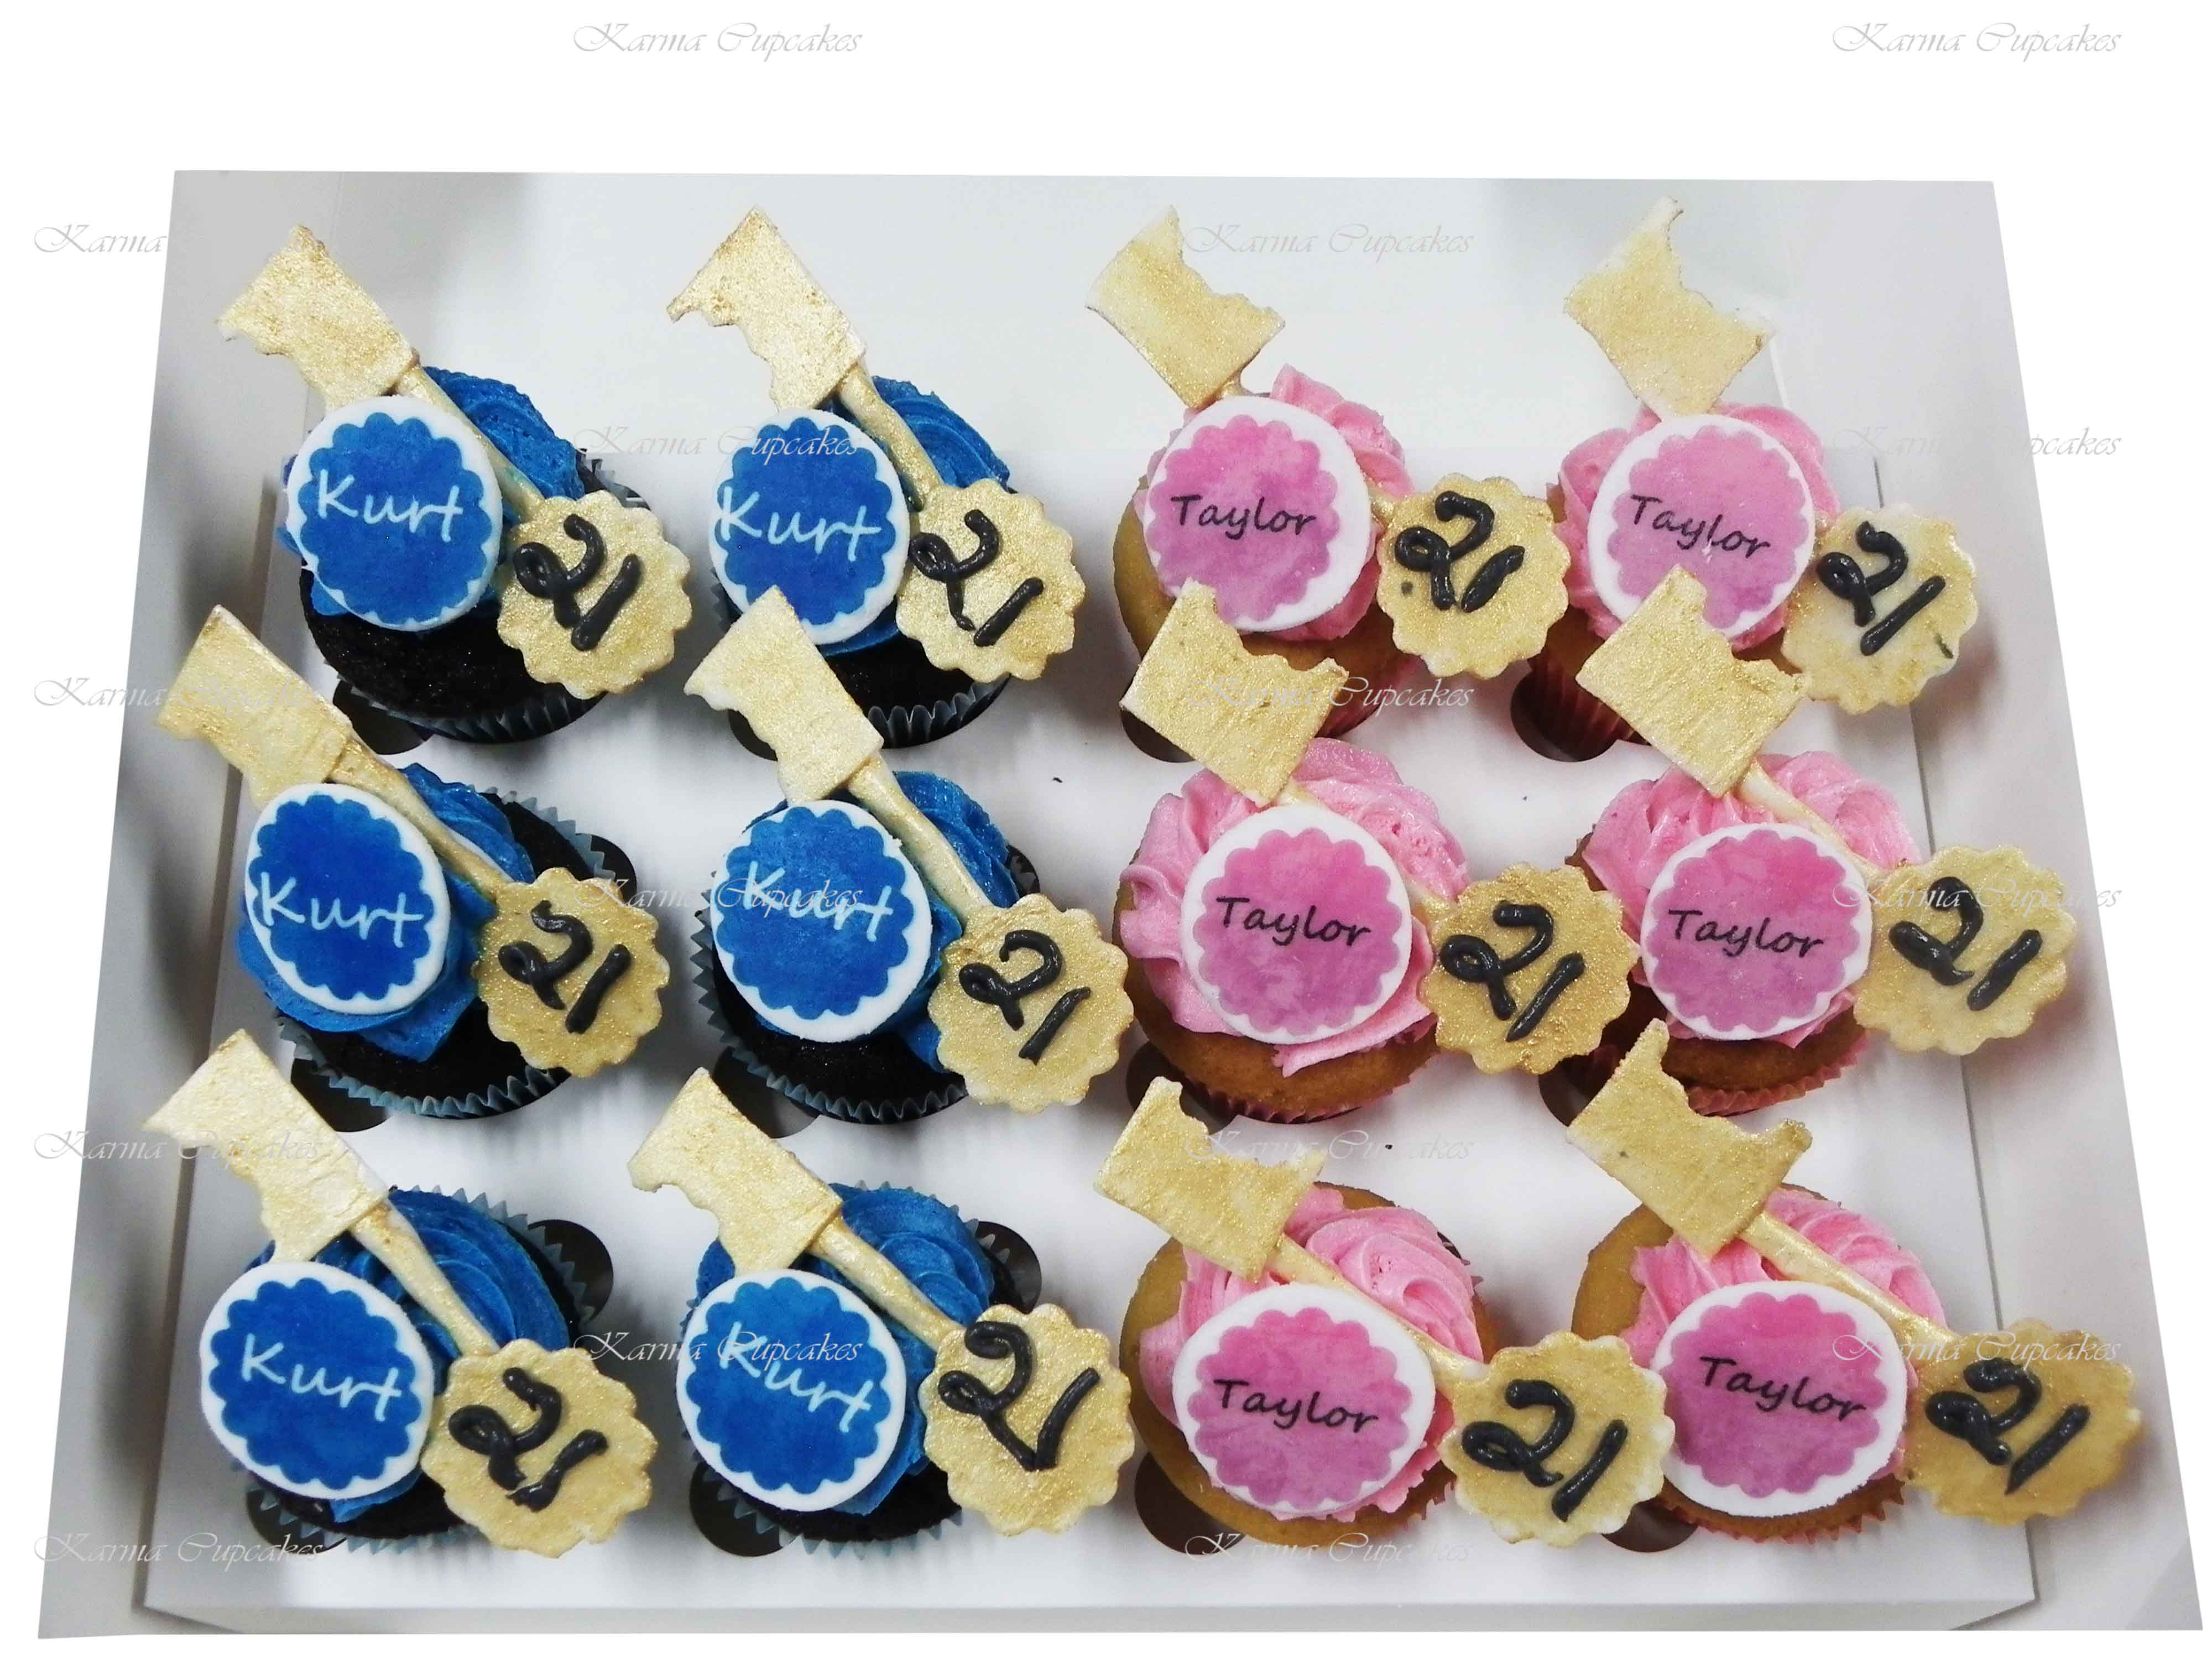 21st Birthday Cupcakes with Handmade Keys and Edible Name Plagues